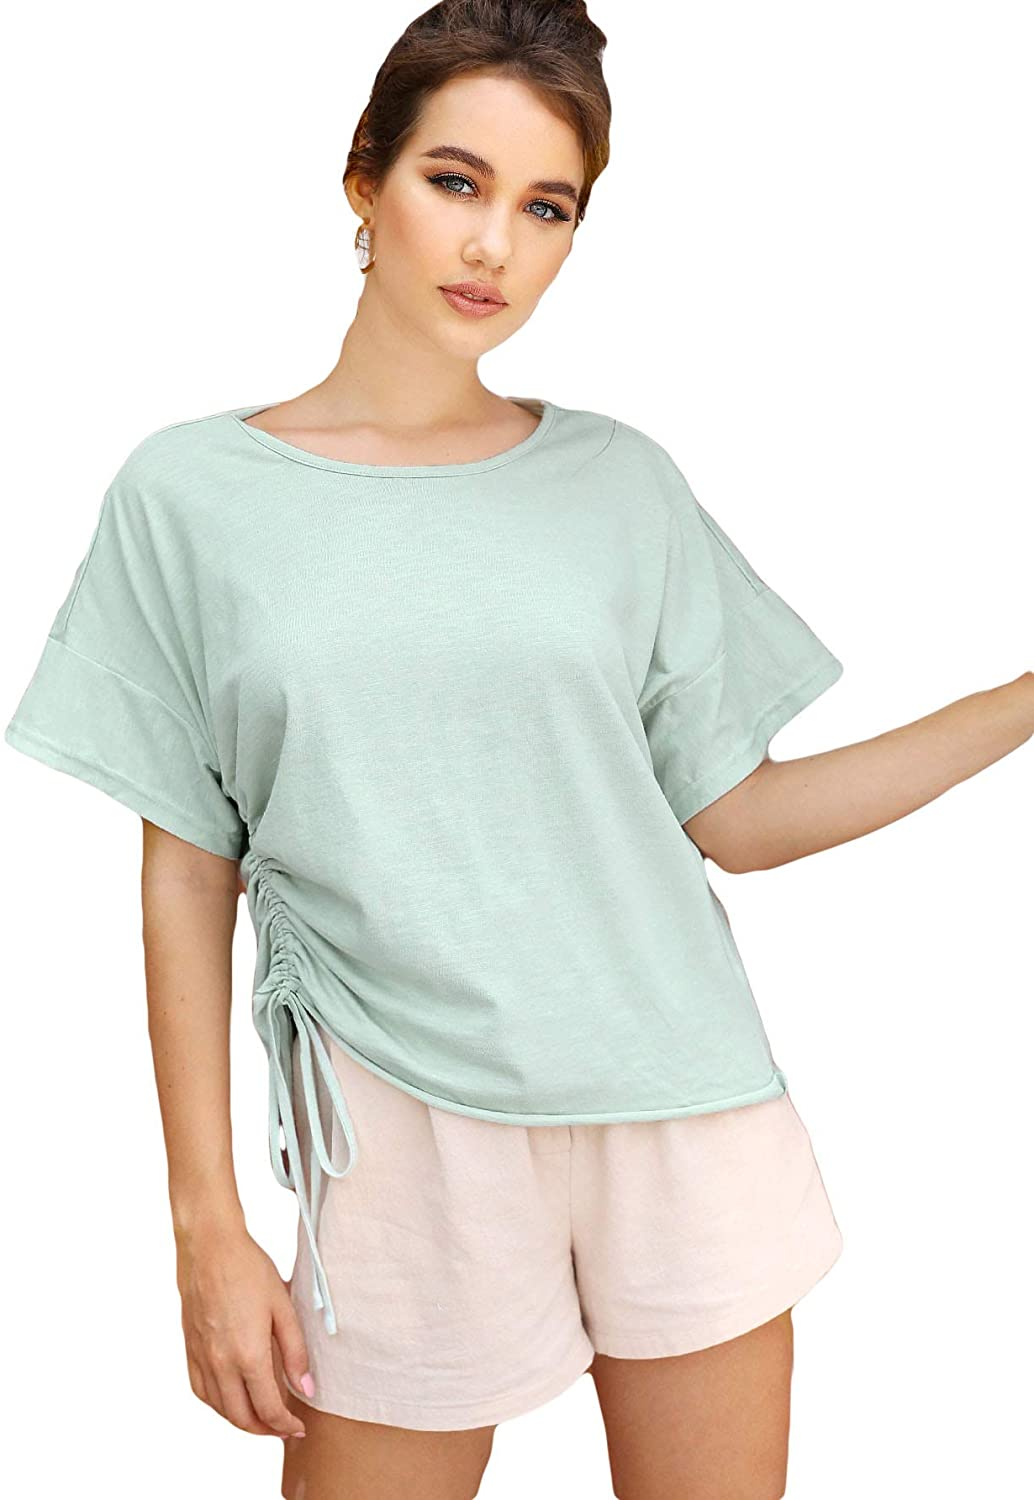 Romwe Women's Casual Short Sleeve Drawstring Side Solid Loose Cotton Tops Tee T-Shirts